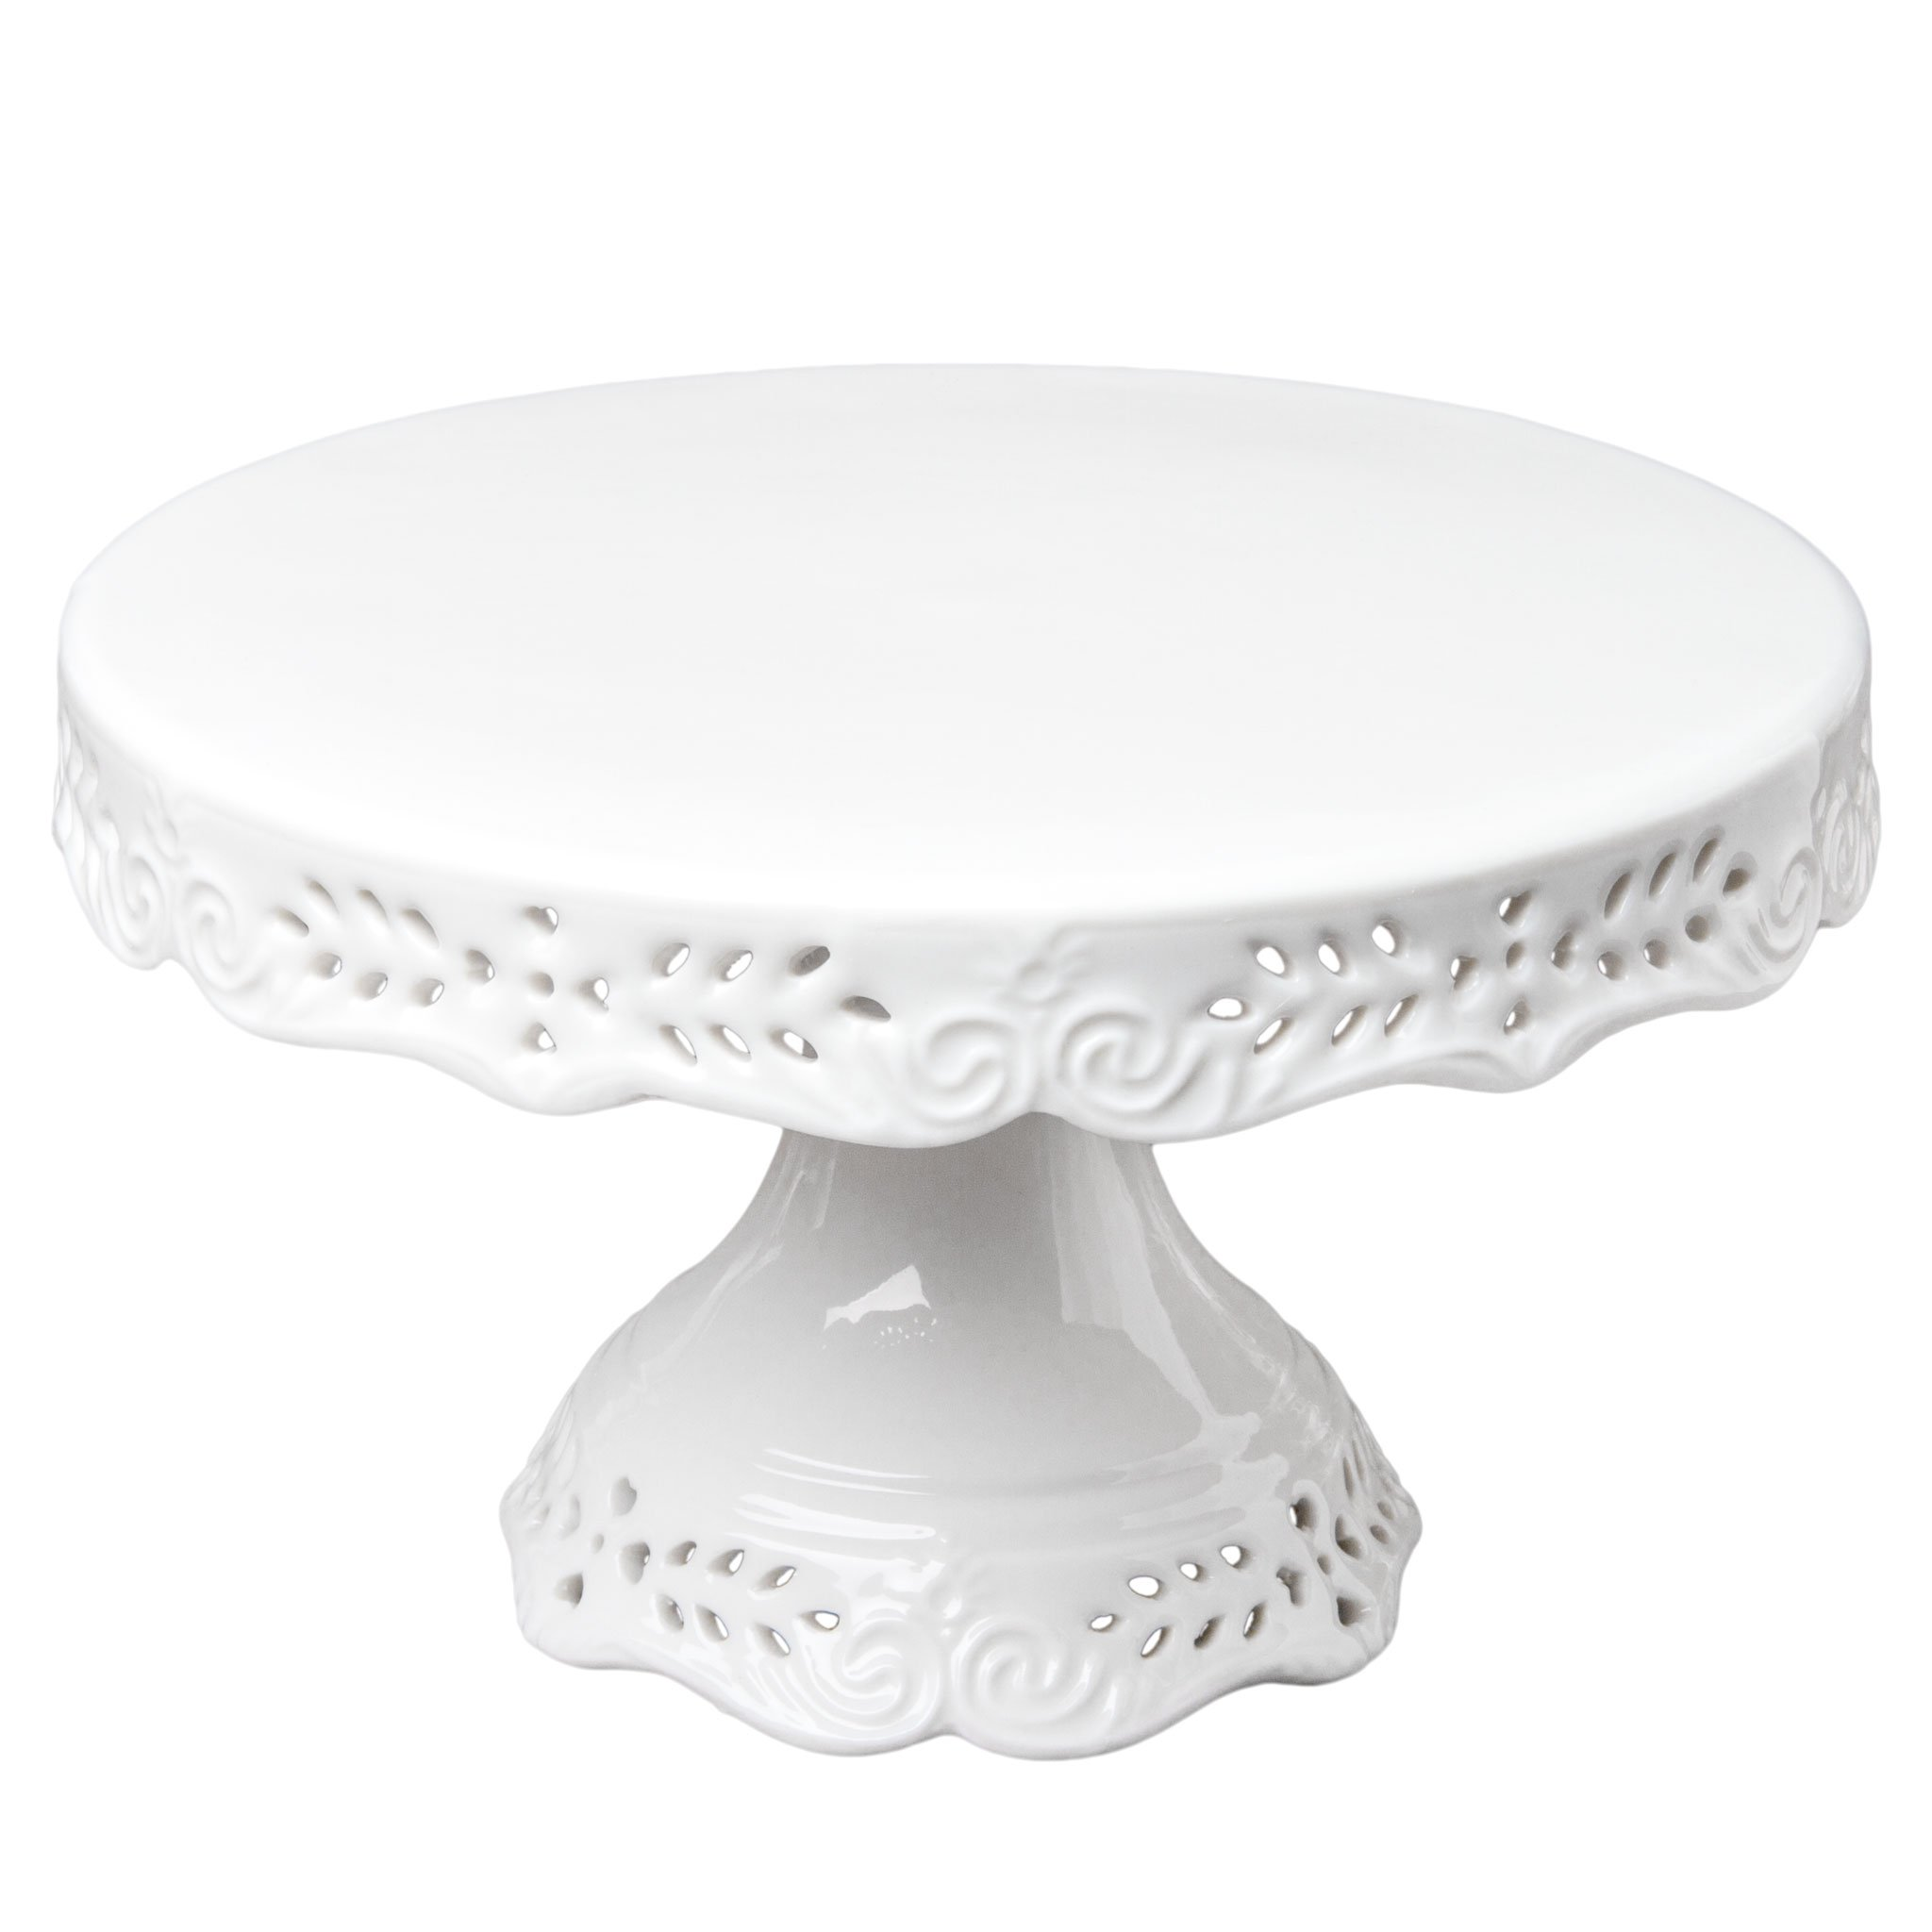 Gracie China 10-Inch Victorian Rose Fine Porcelain Round Pedestal Cake Stand Off White